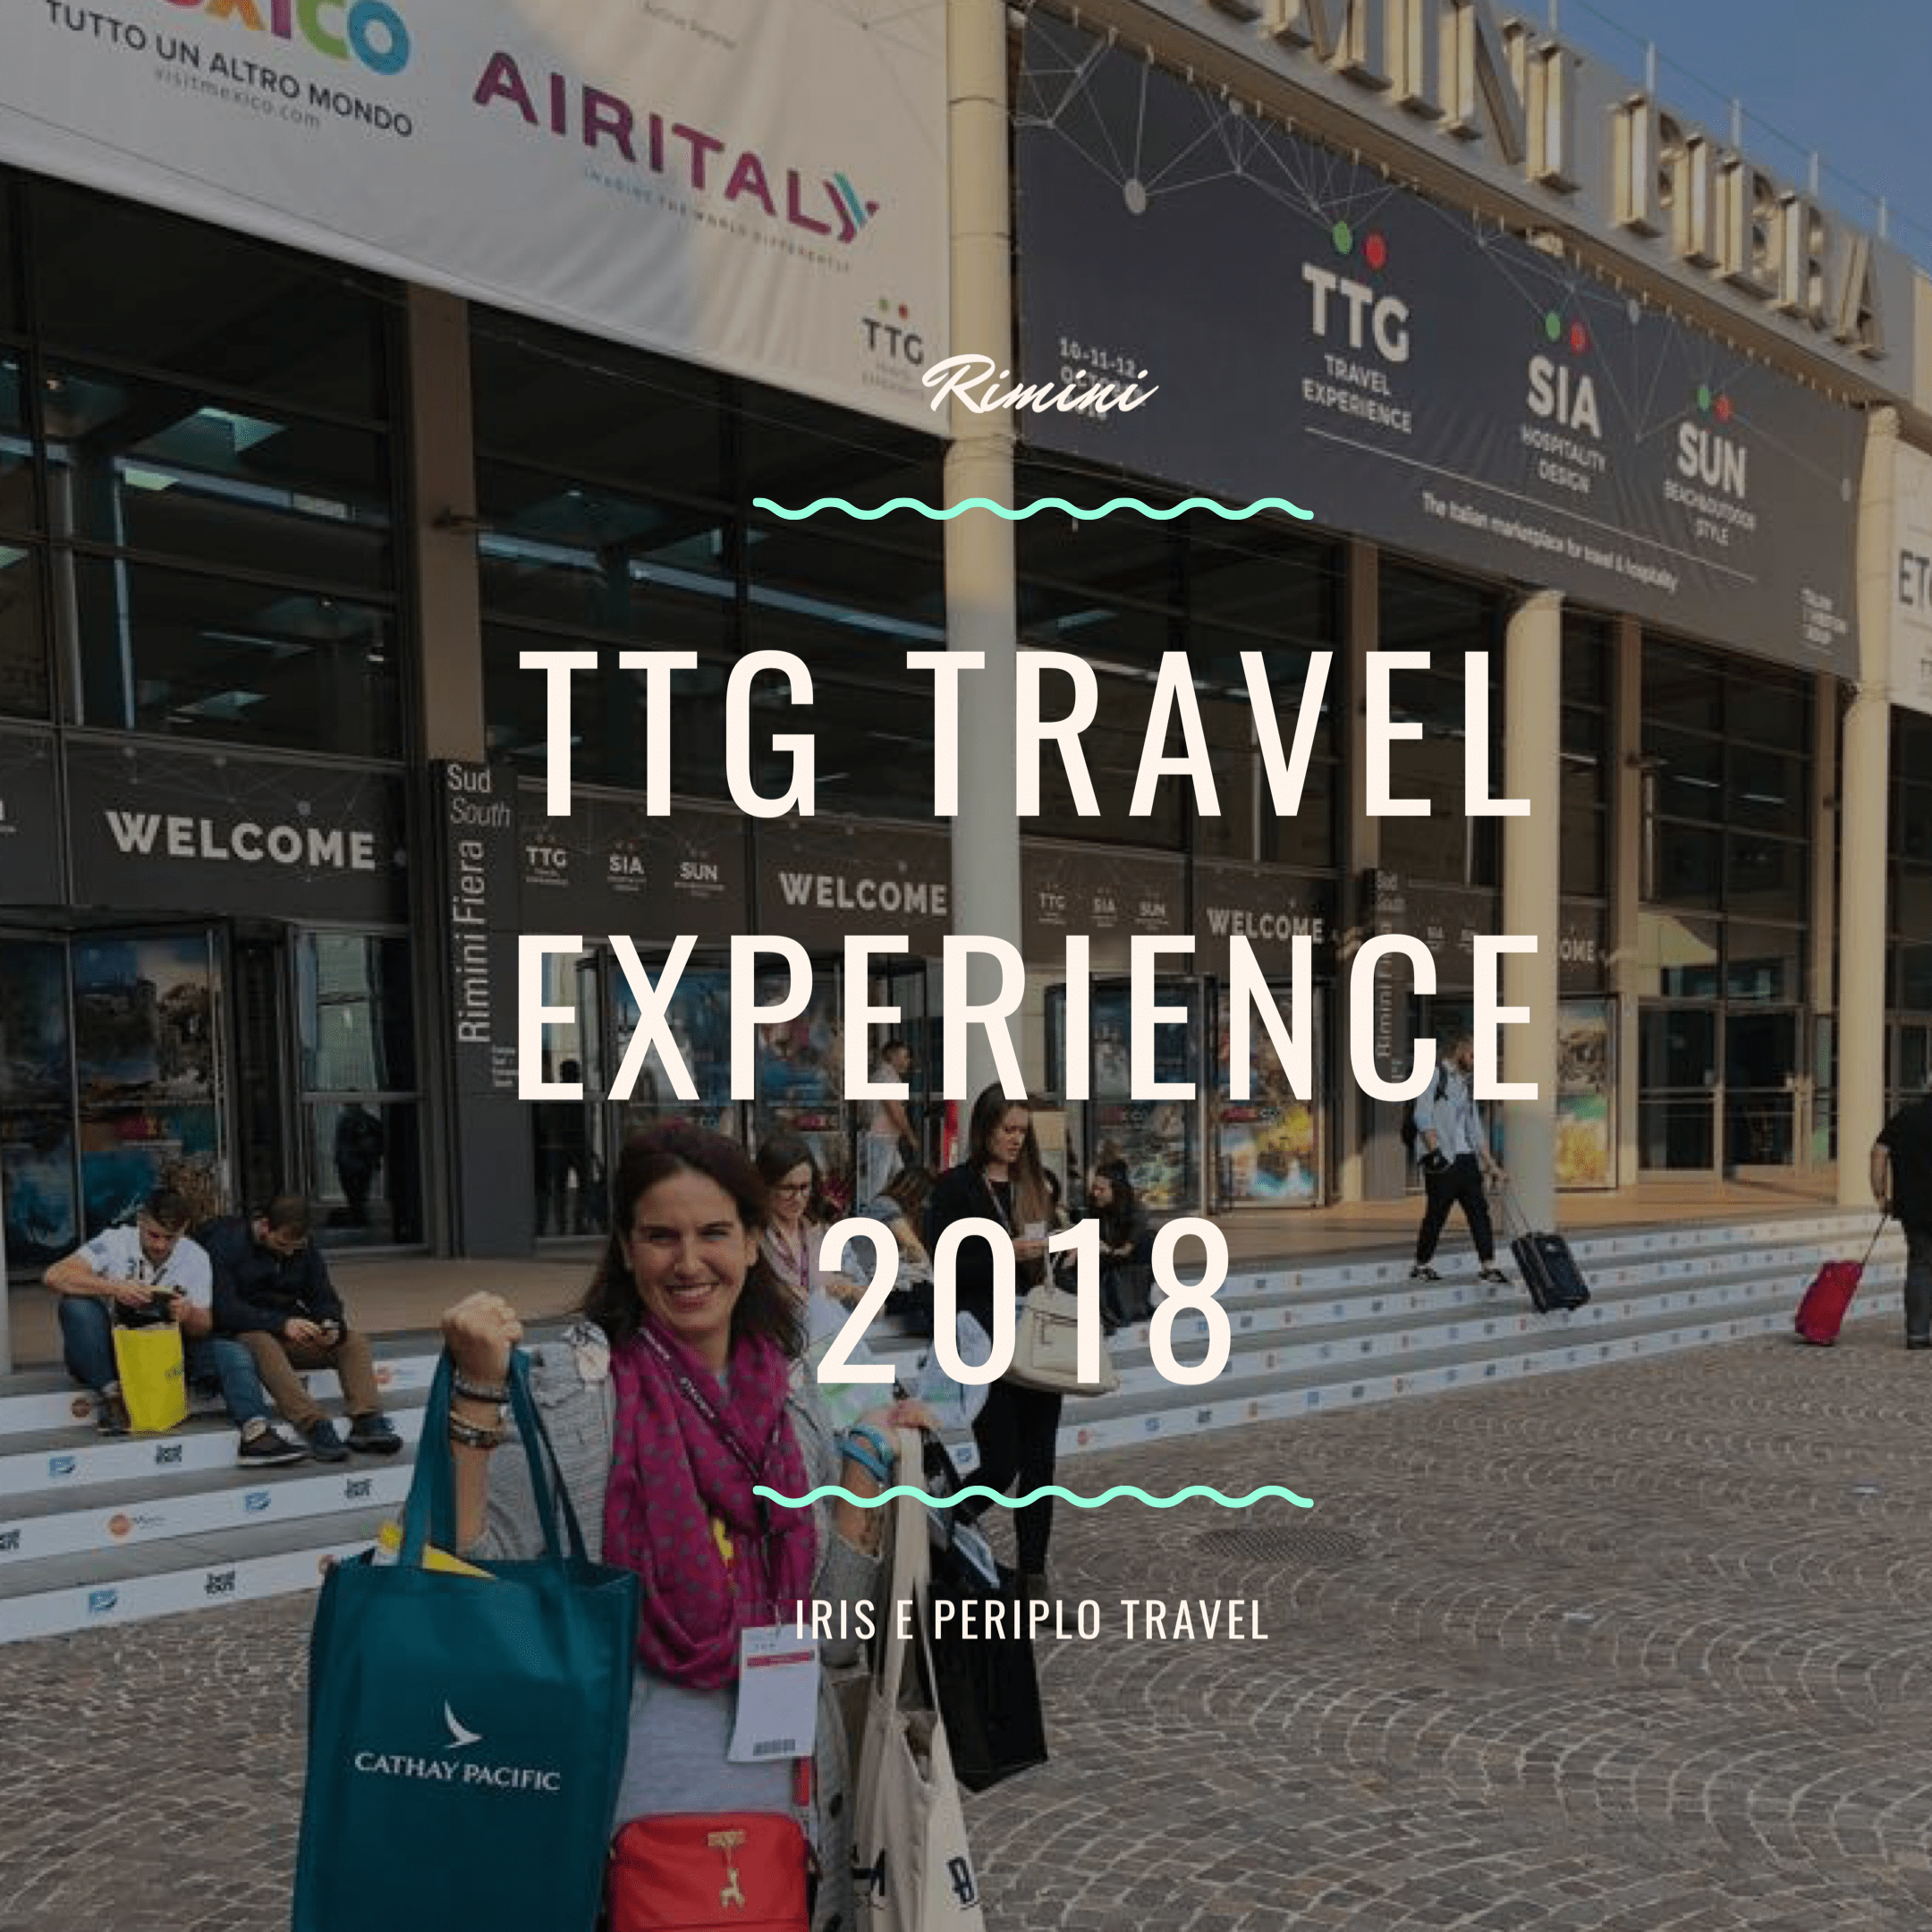 ttg travel experience